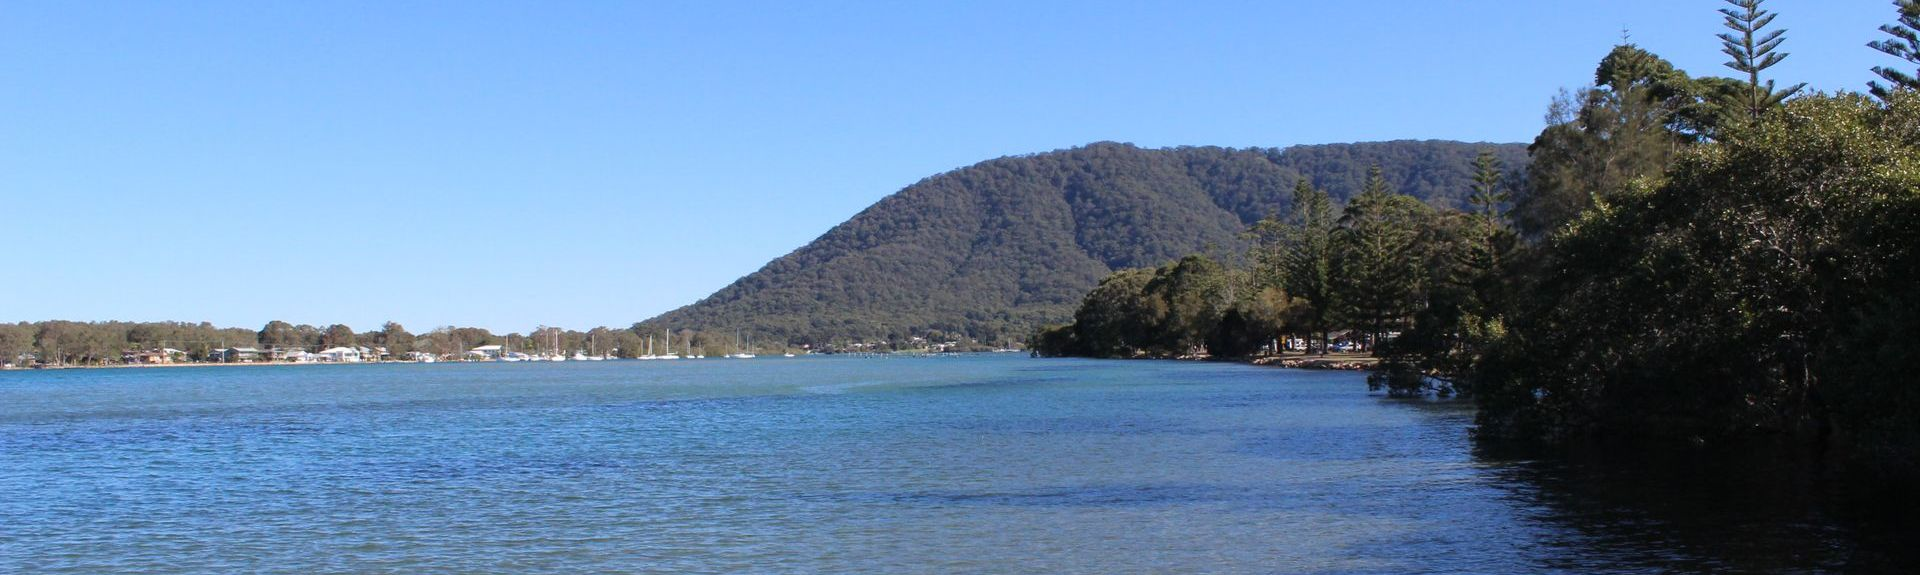 Dunbogan, New South Wales, Australia